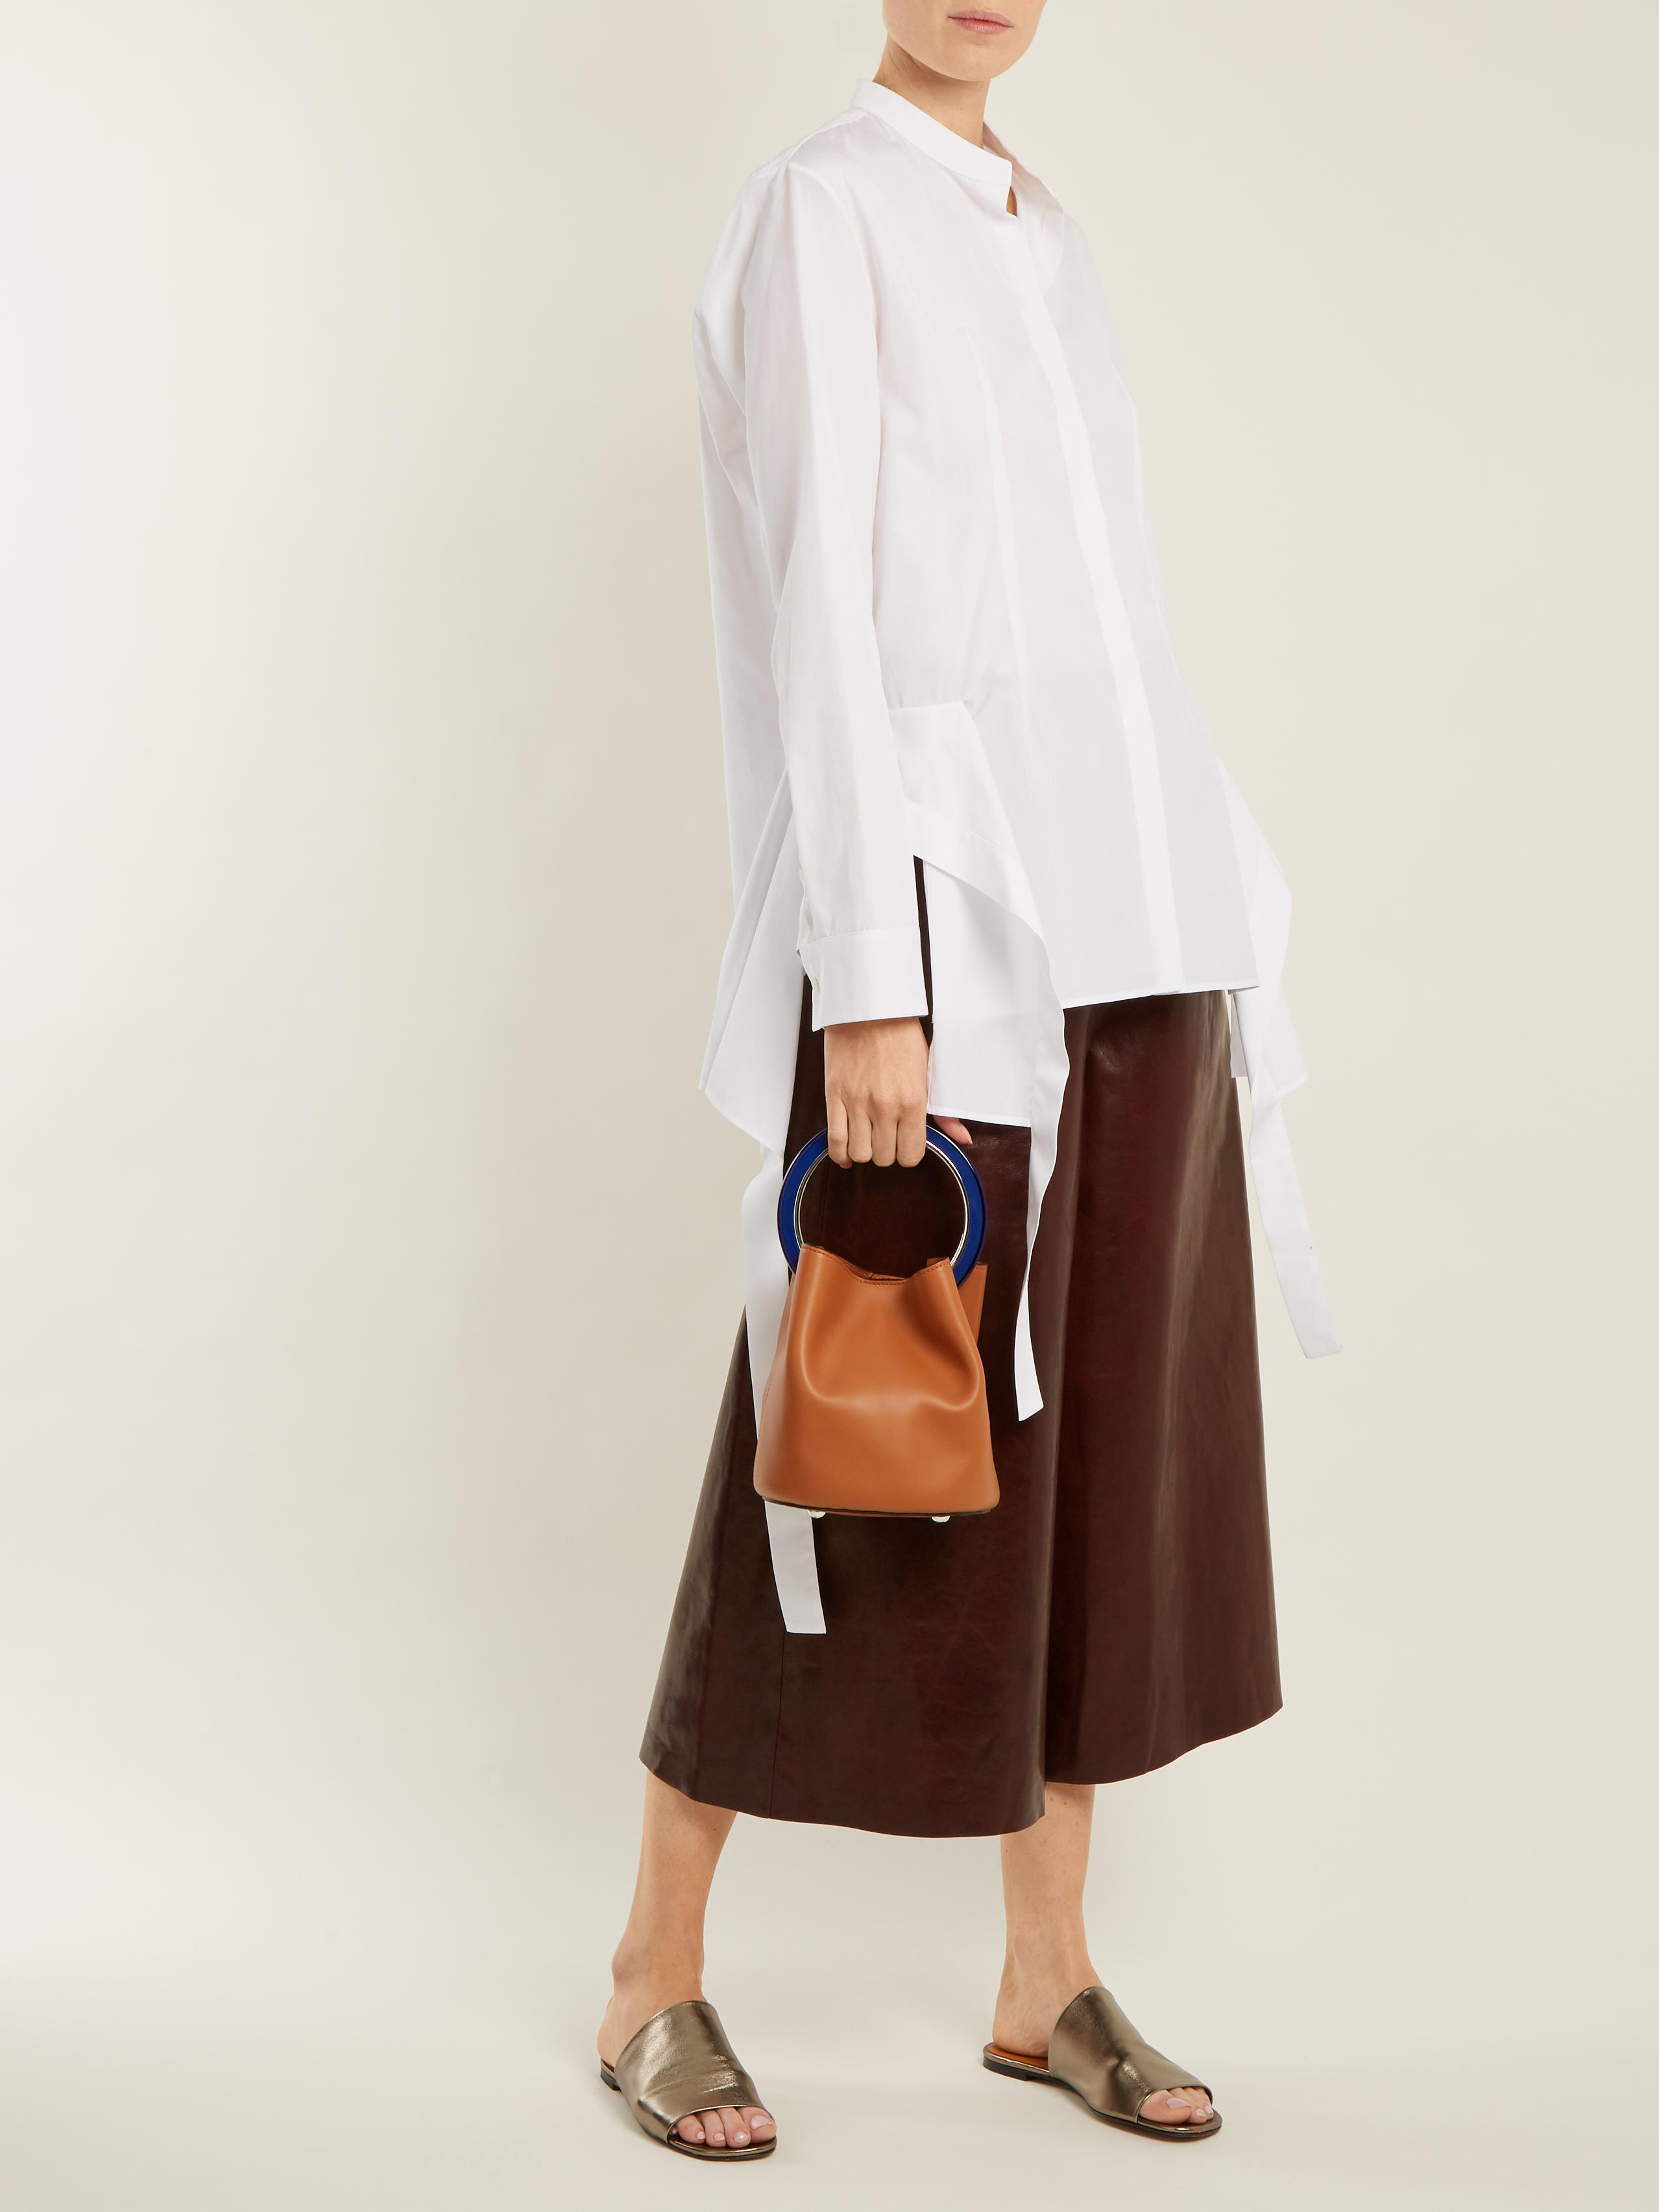 887c20835 Marni Pannier Leather Bucket Bag in Brown - Lyst